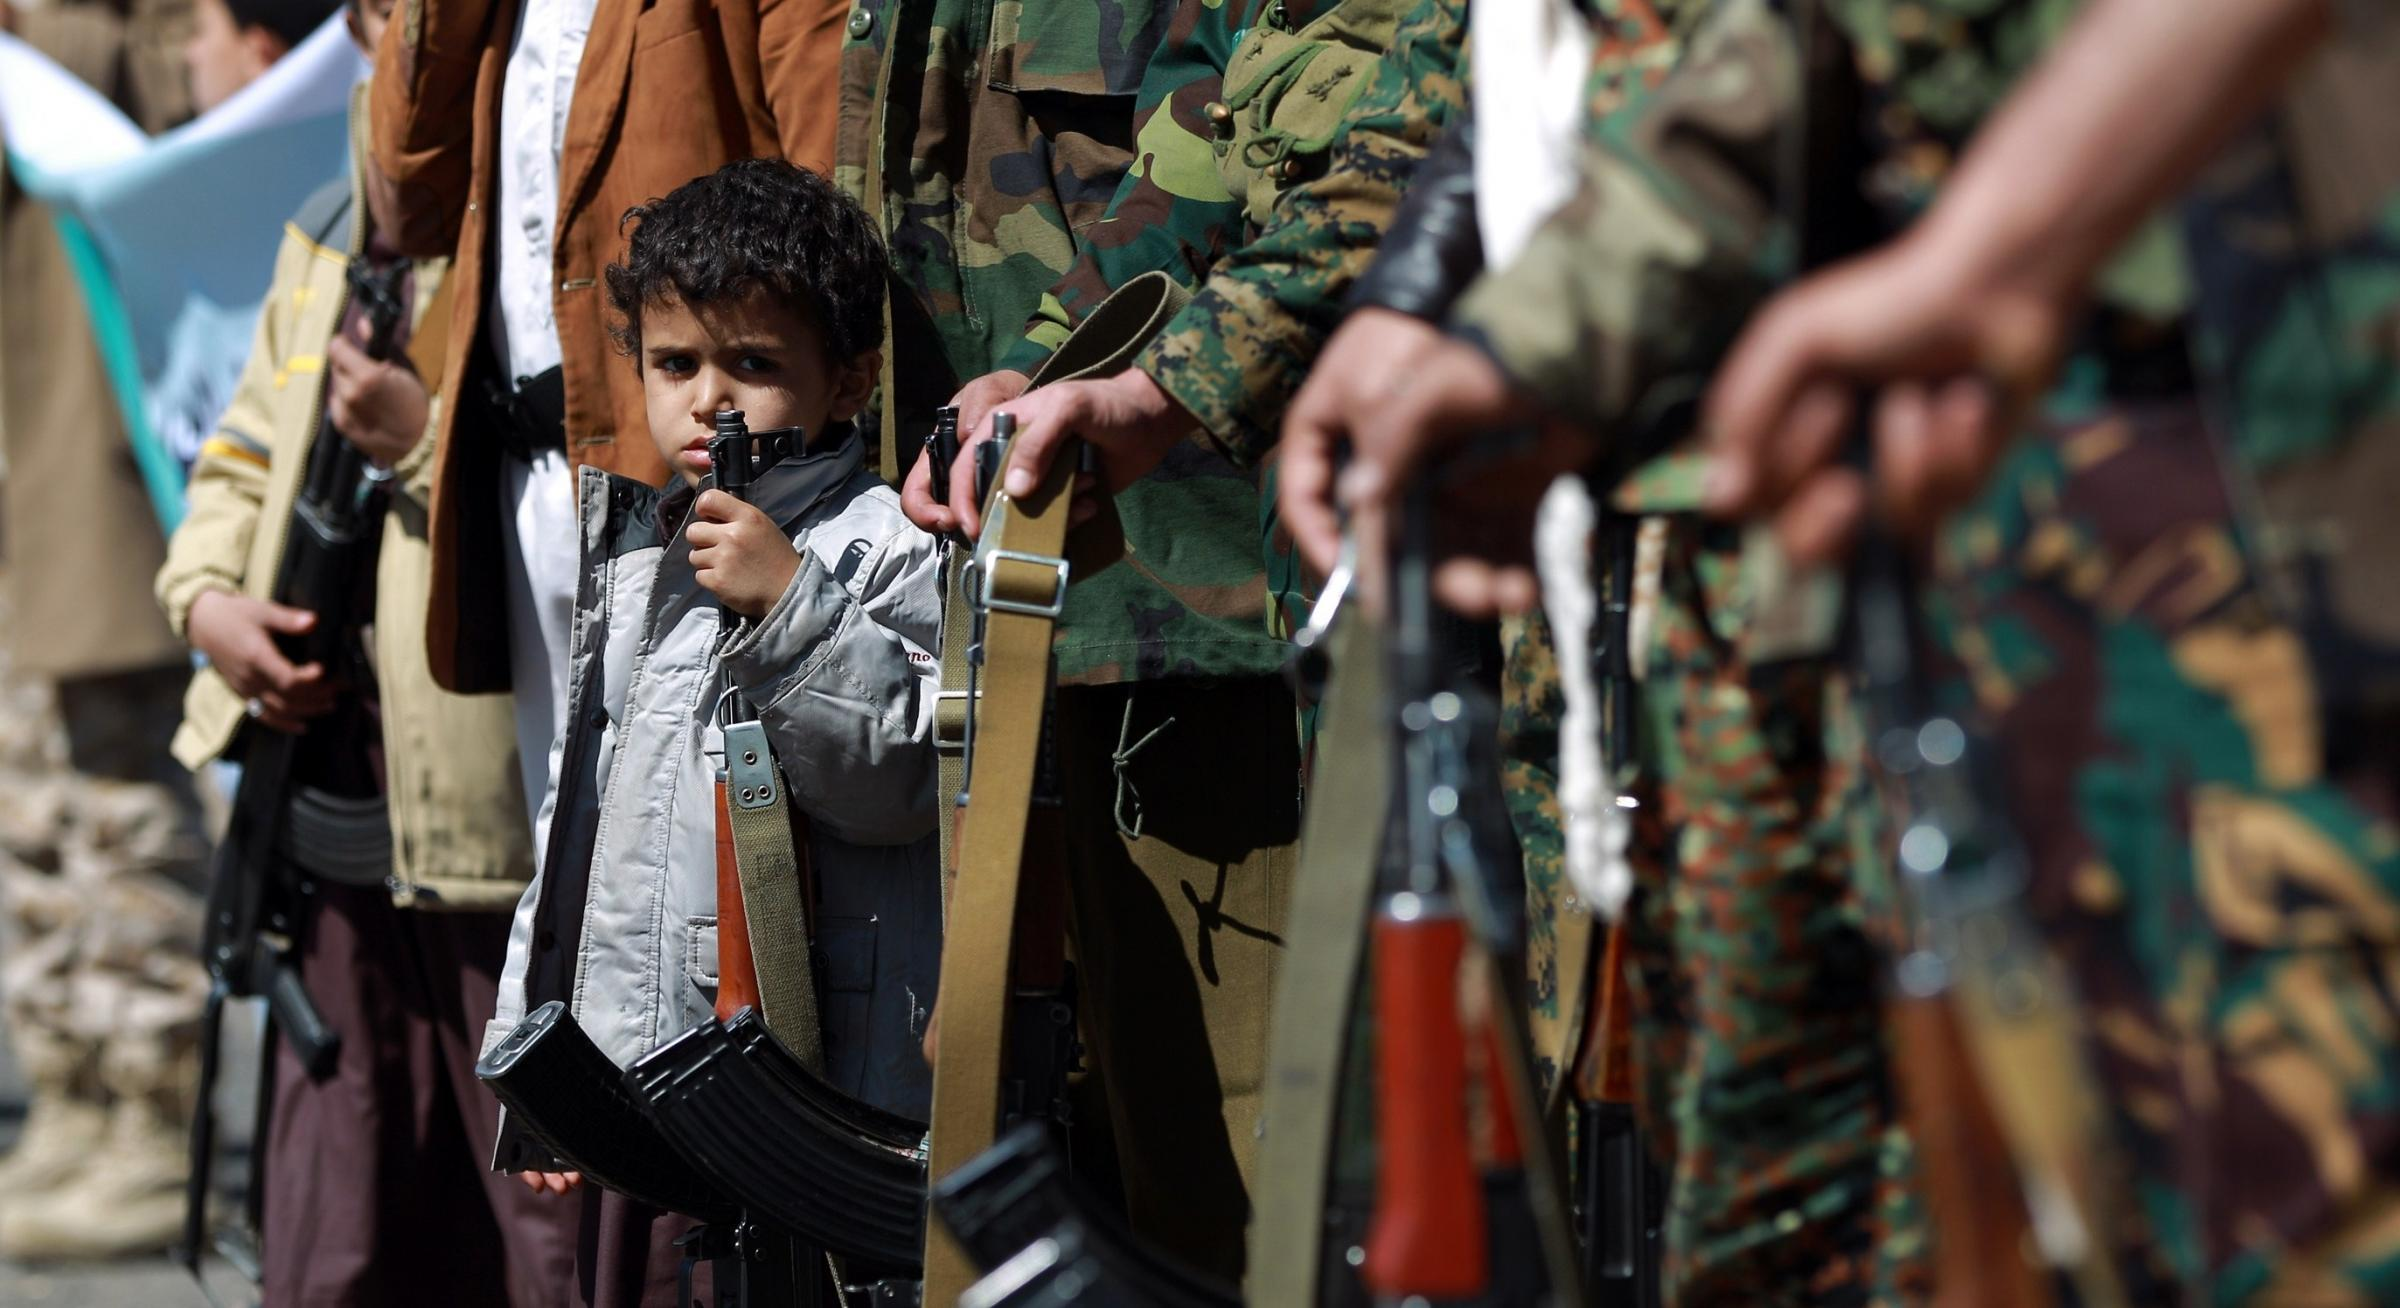 US arms firm Raytheon and BAE Systems have been linked to alleged Yemen war crimes